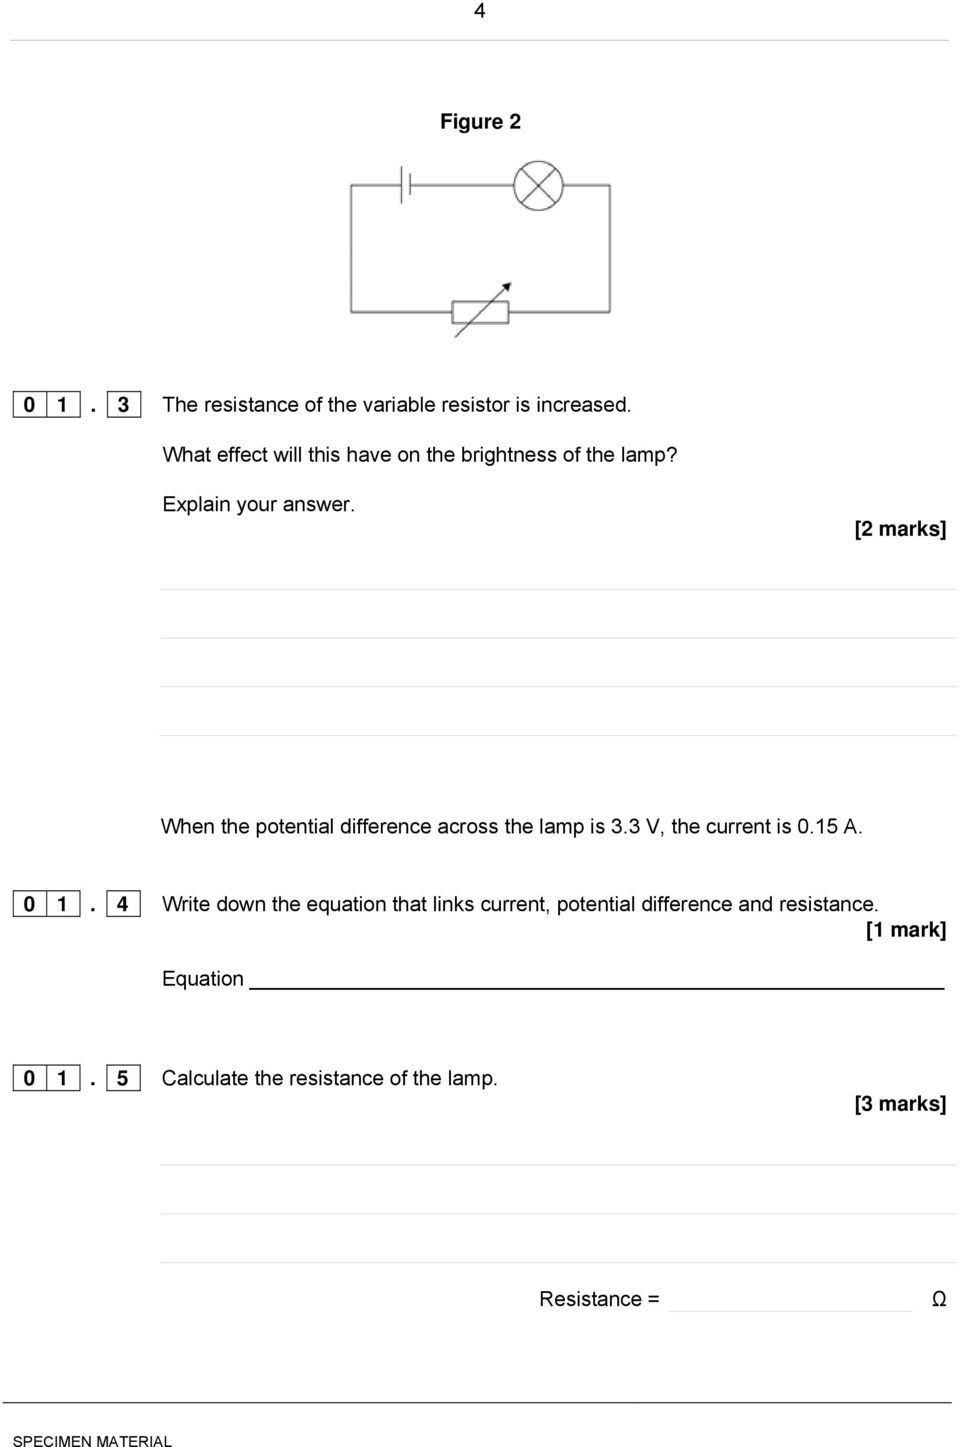 edexcel history a2 coursework ireland A-level history coursework essay rahmahussein / november 23, 2014  the exam board is edexcel, and the coursework programme i followed was 'cw39: the.